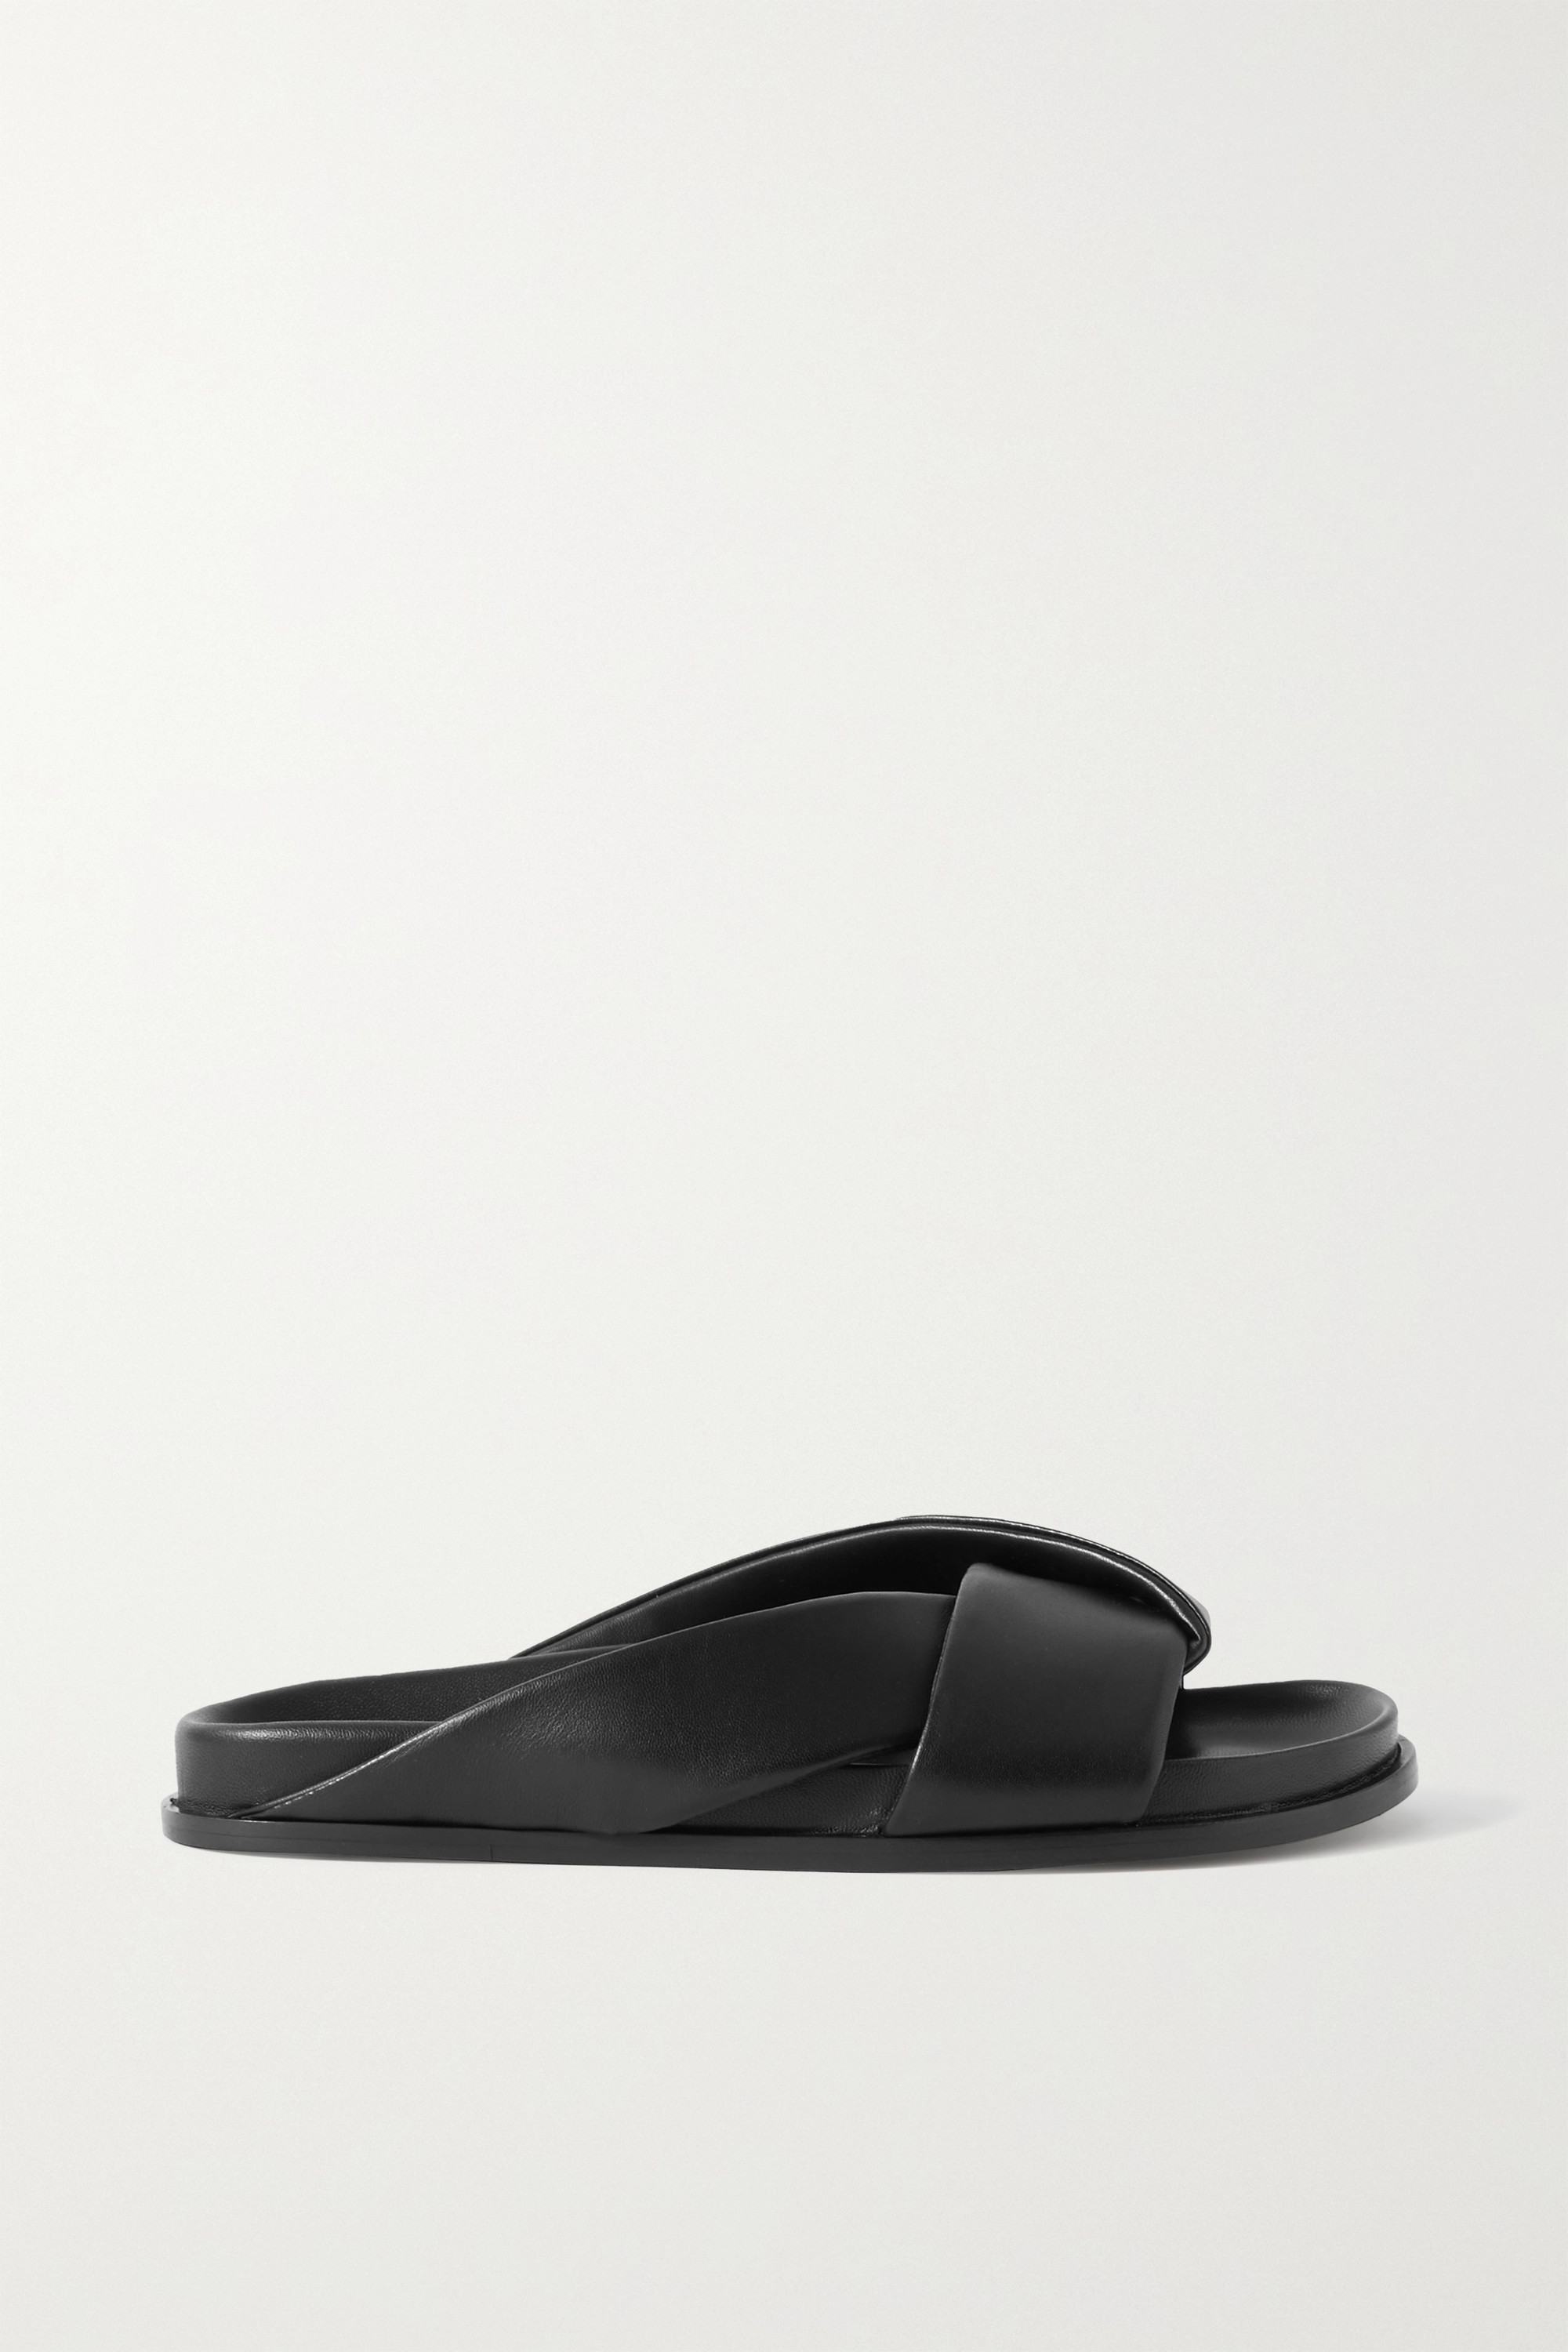 EMME PARSONS Leather slides